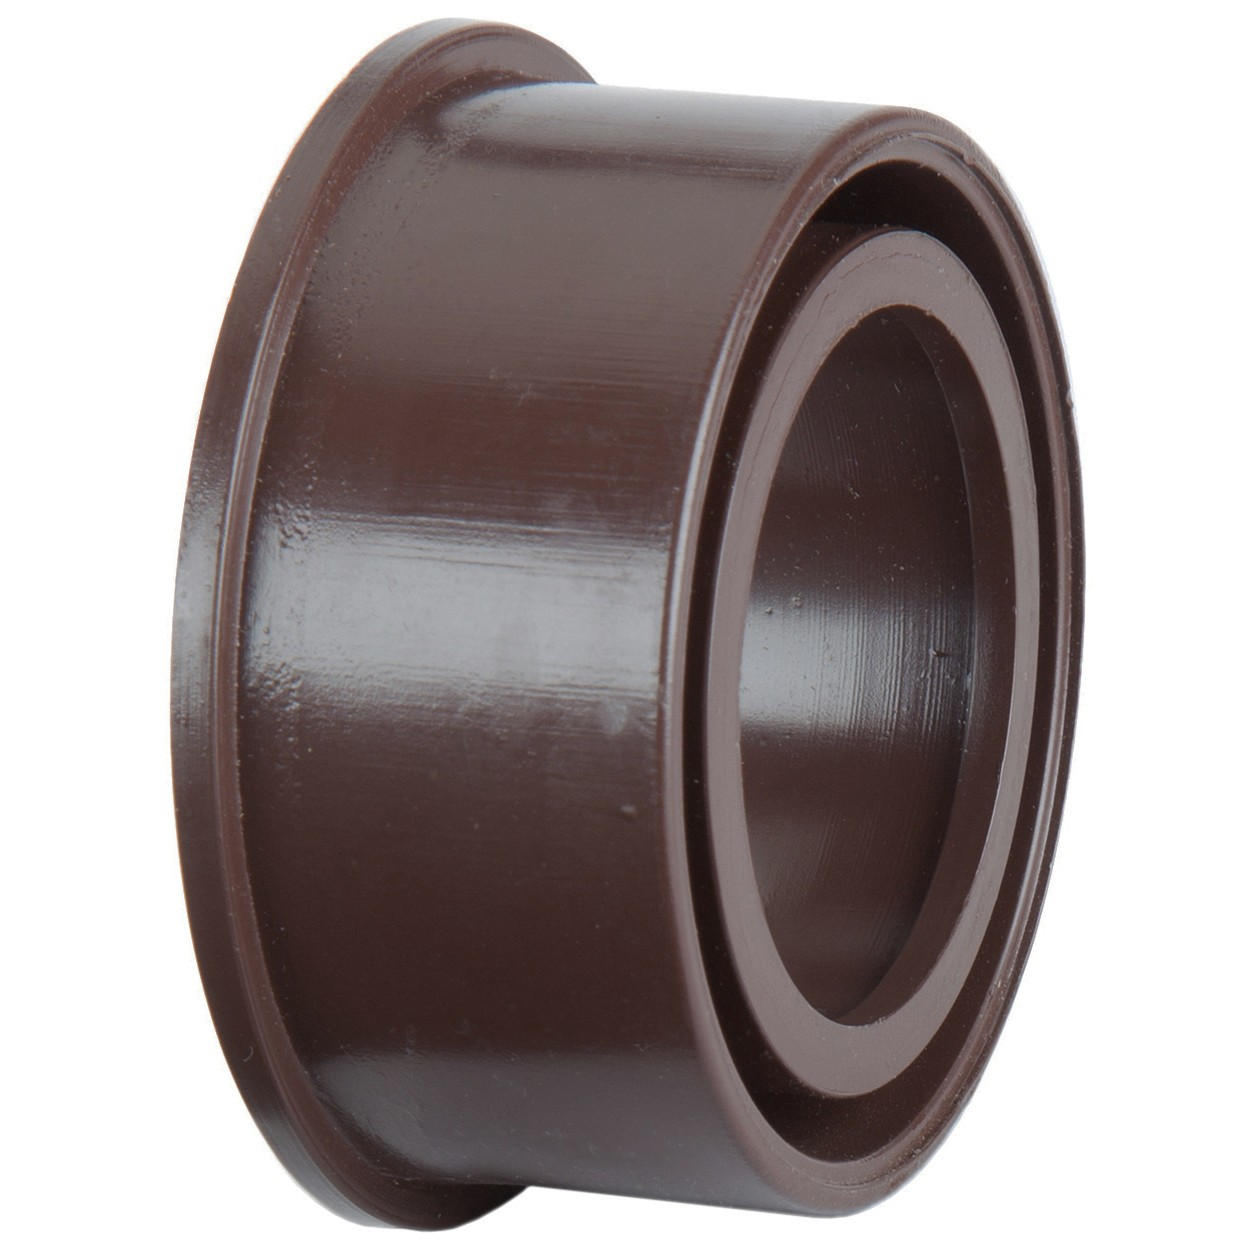 Polypipe 40mm Solvent Soil Boss Adaptor - Brown